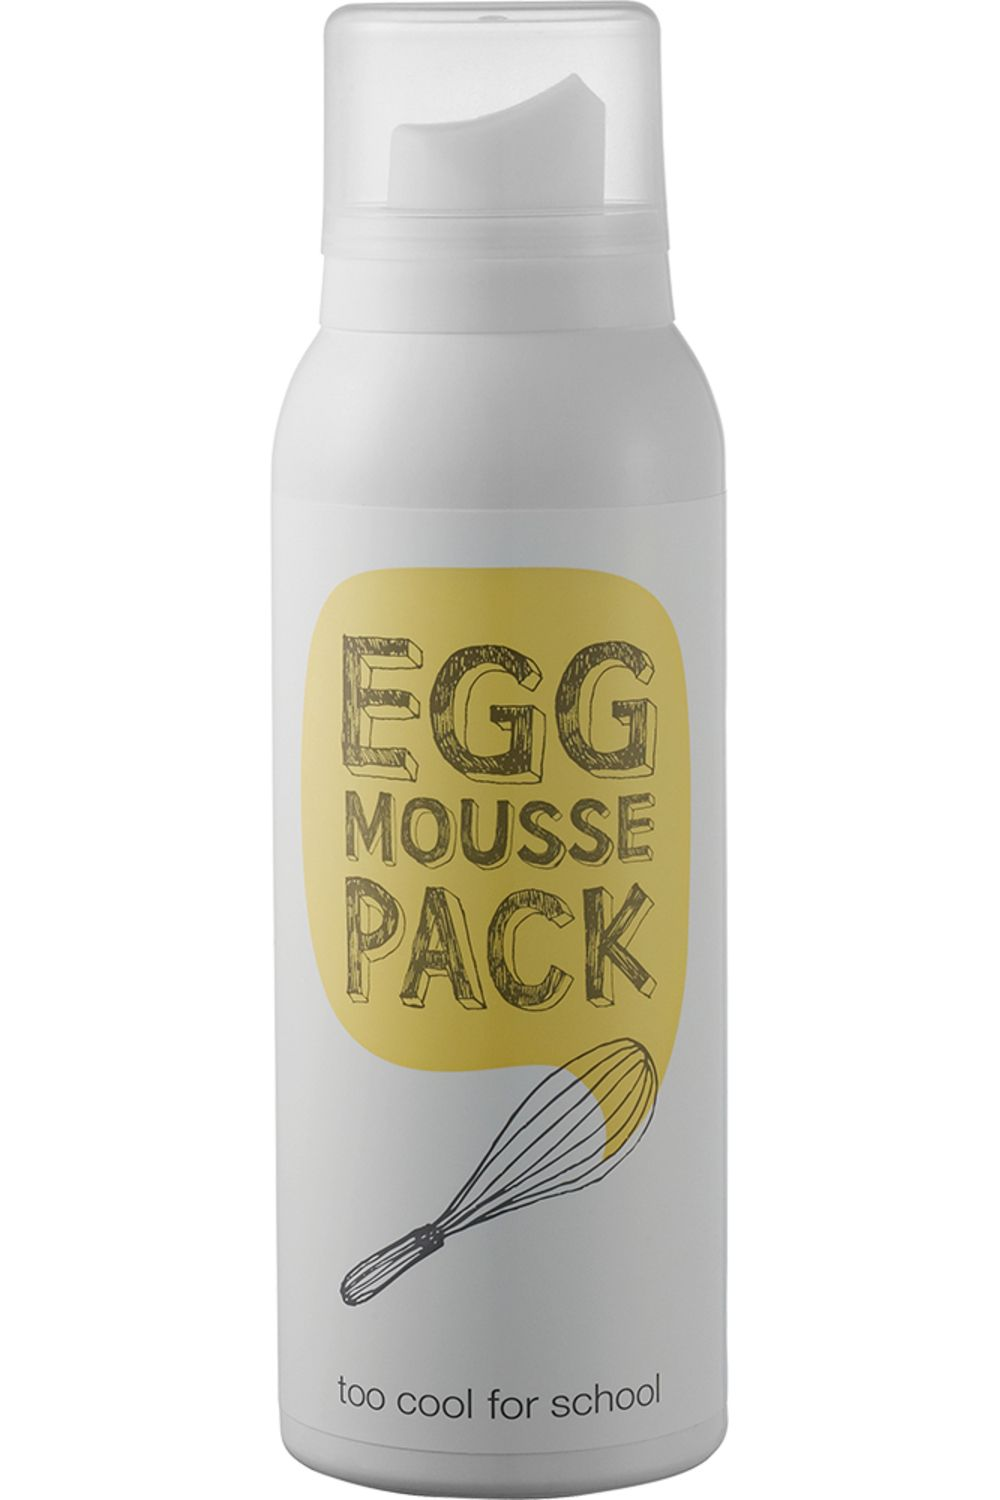 Blissim : Too Cool For School - Egg Mouse Pack - Egg Mouse Pack